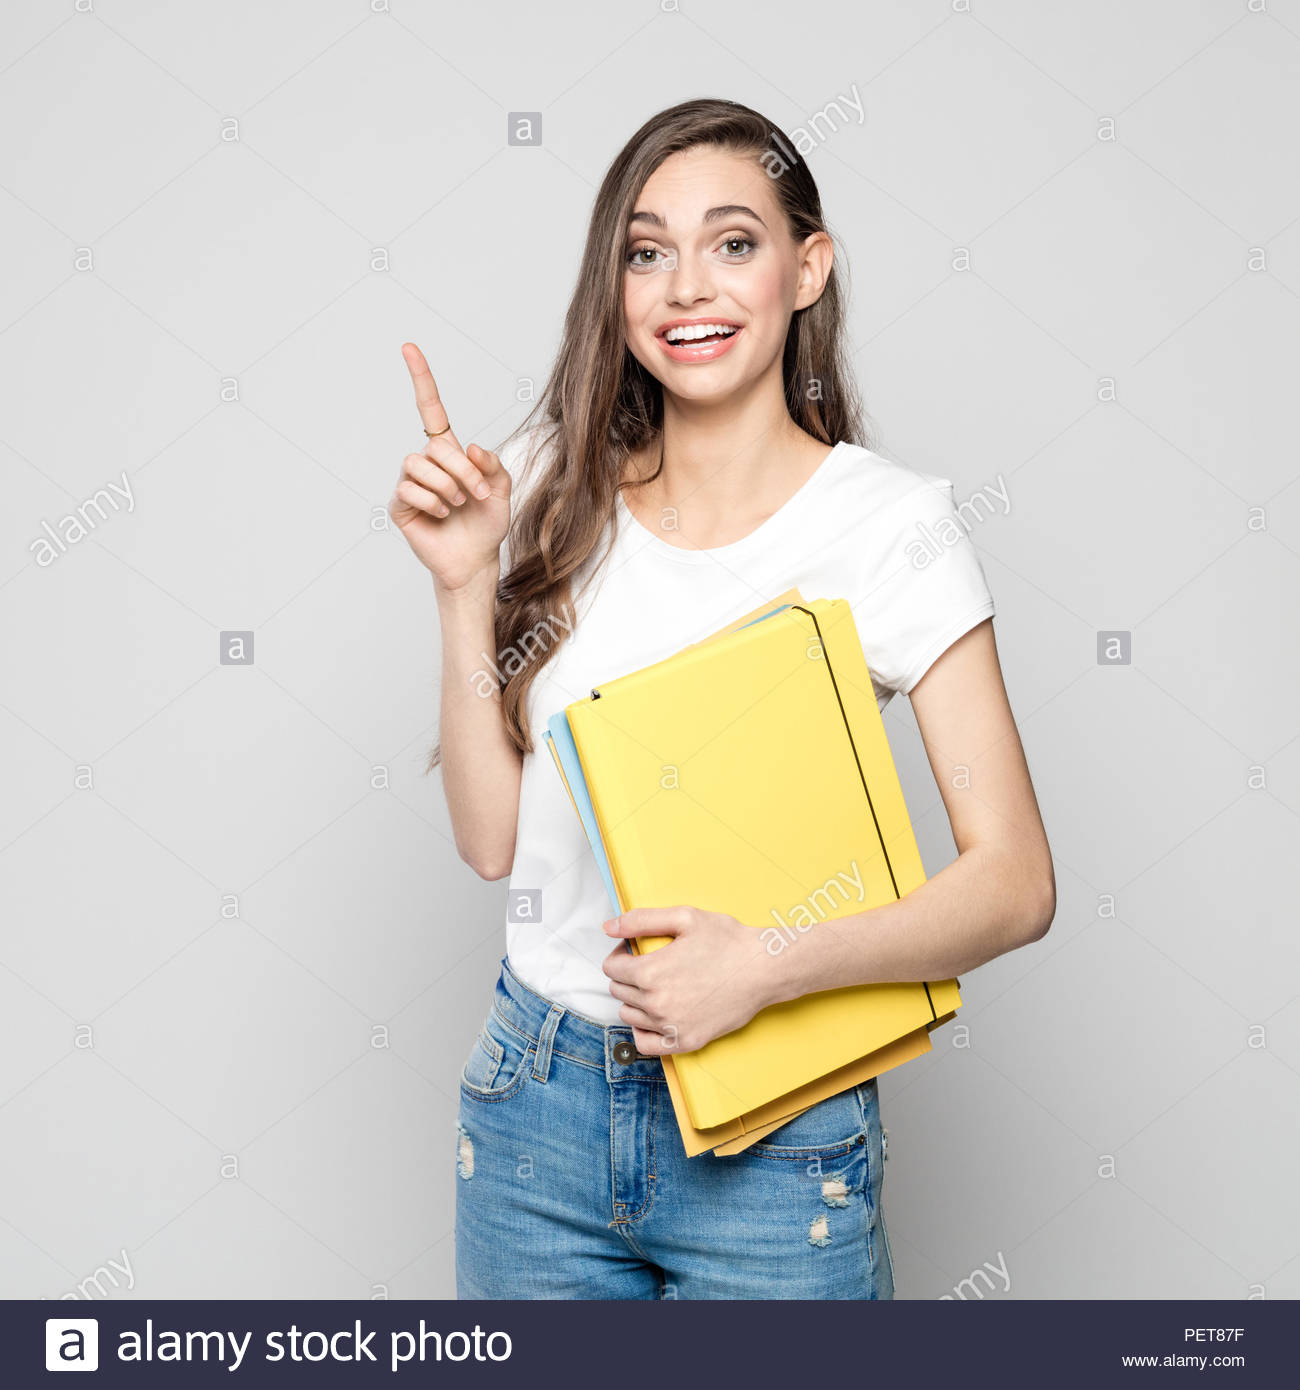 Studio portrait of happy young woman wearing white t-shirt and jeans holding yellow files and pointing with index finger. Grey background. - Stock Image